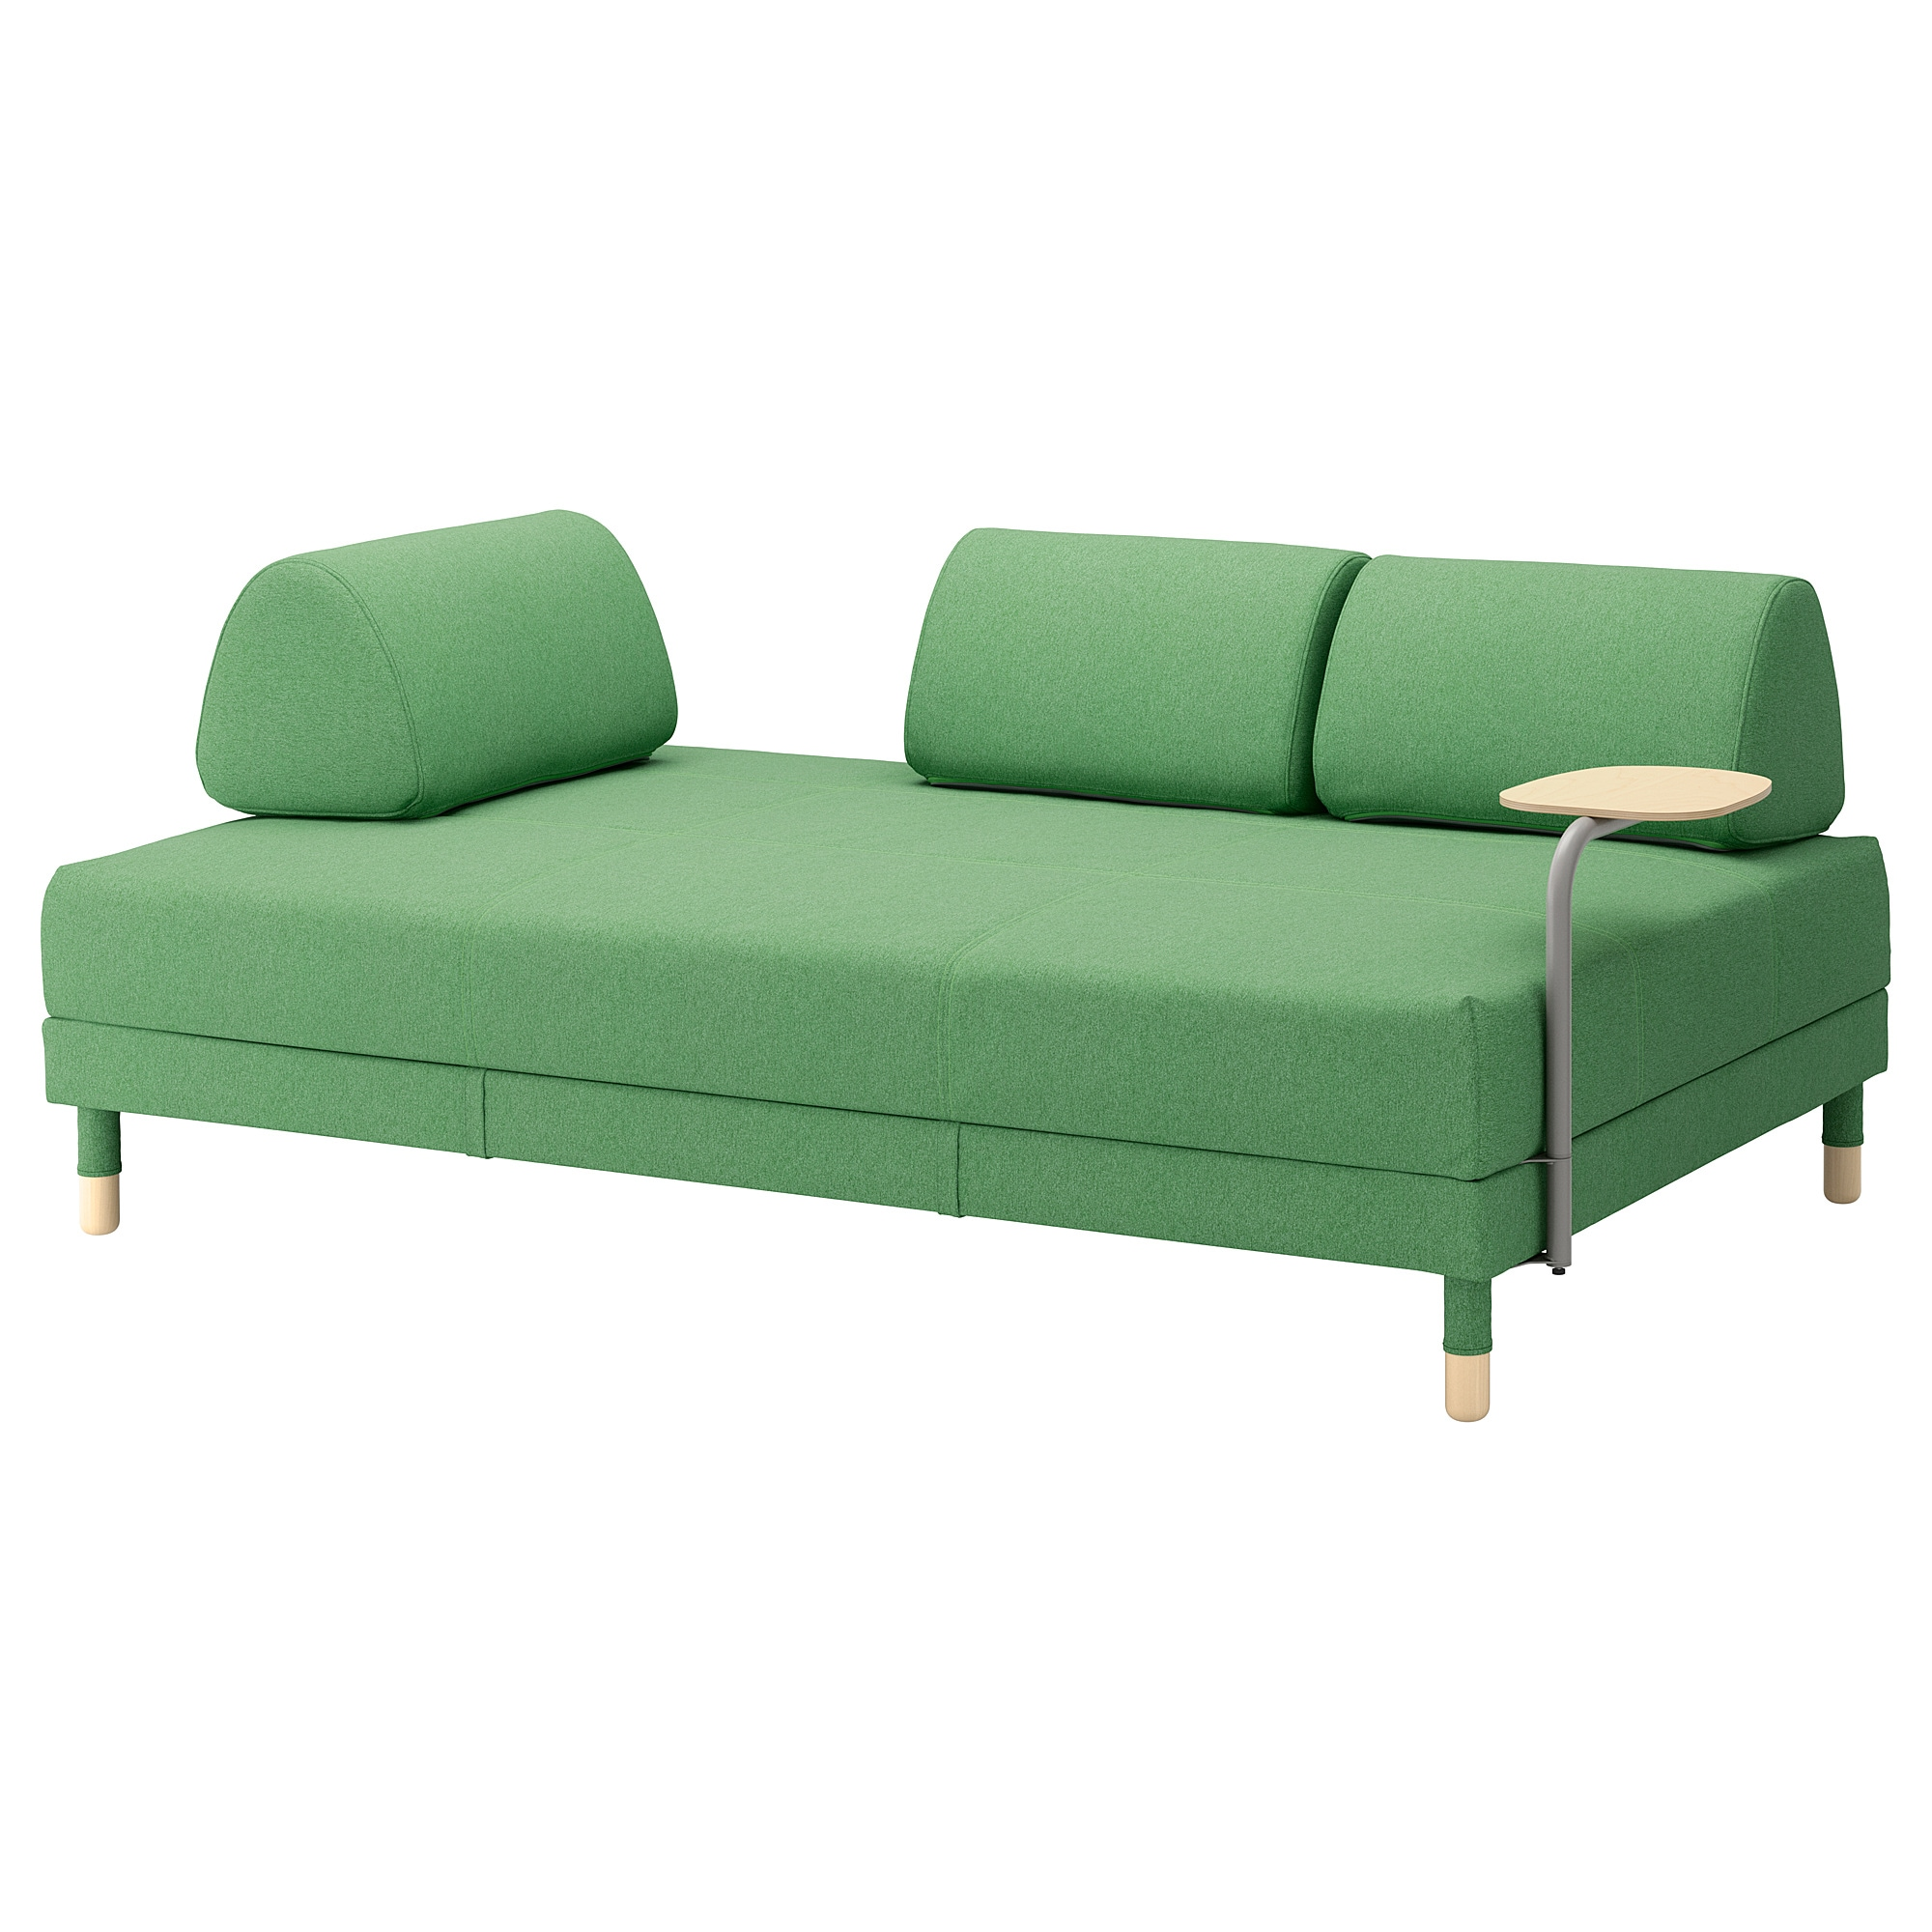 Flottebo Sofa Bed With Side Table Lysed Green